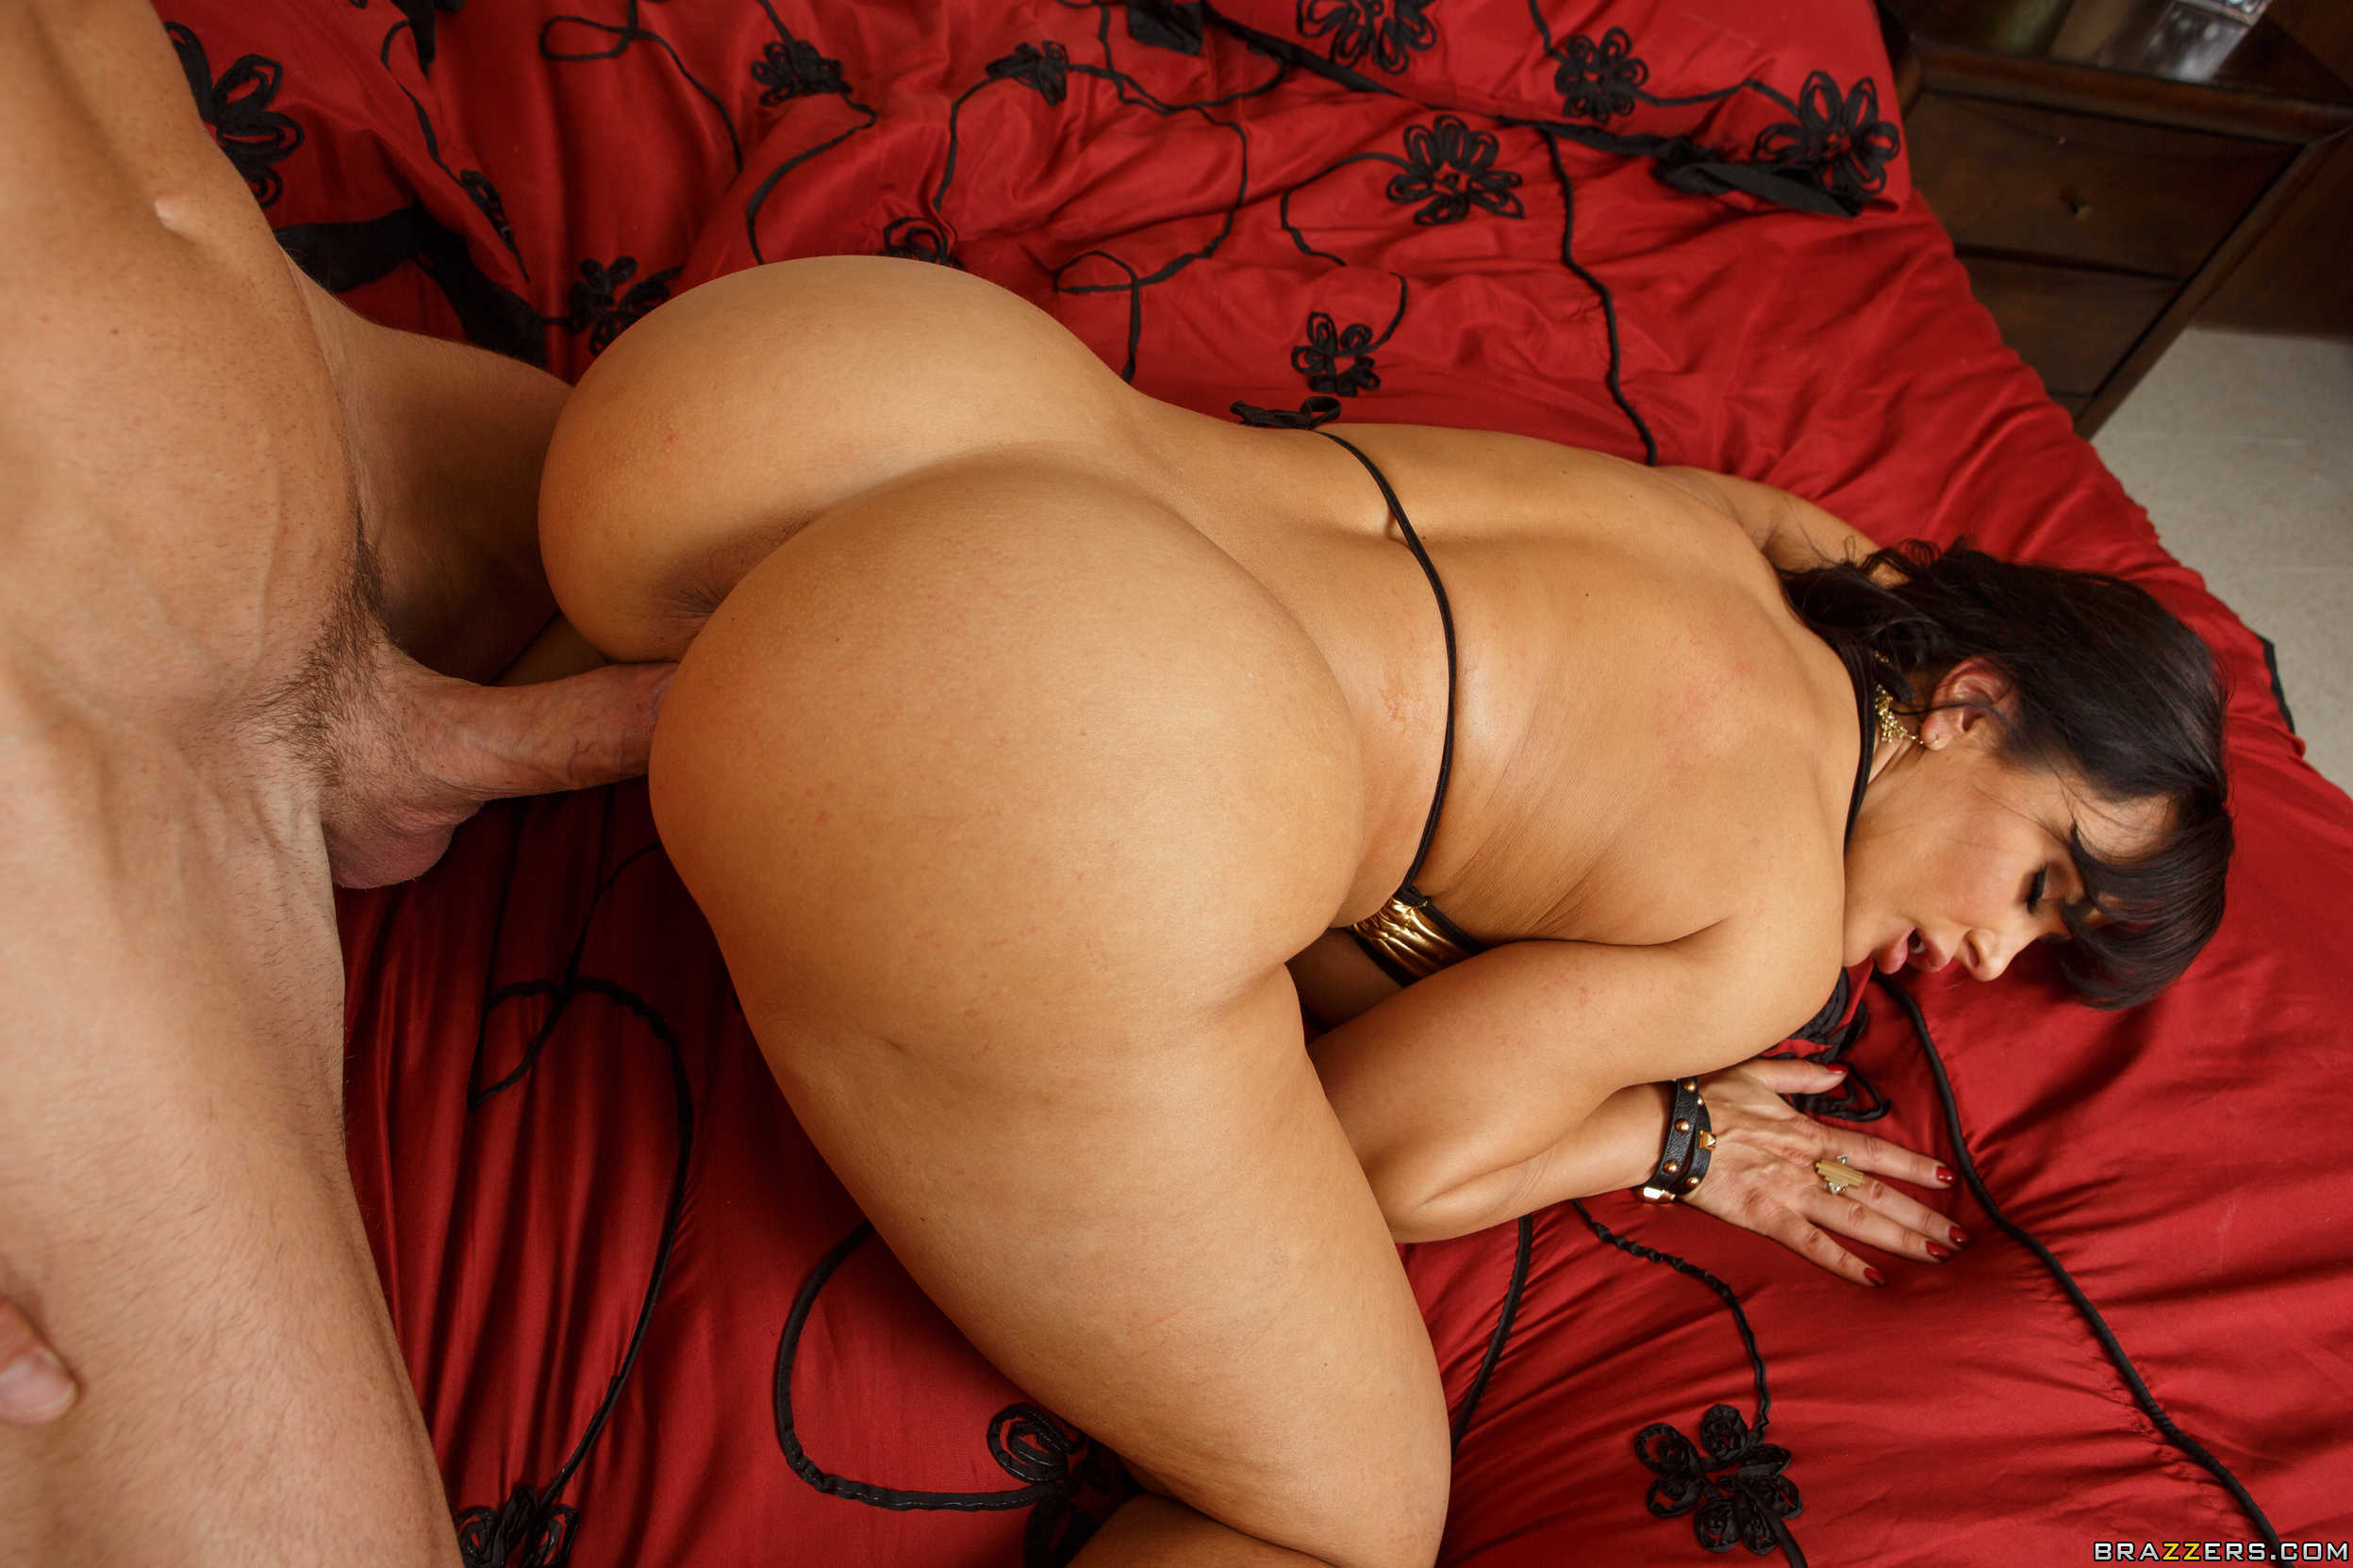 Milf gets fucked face down ass up sex photo